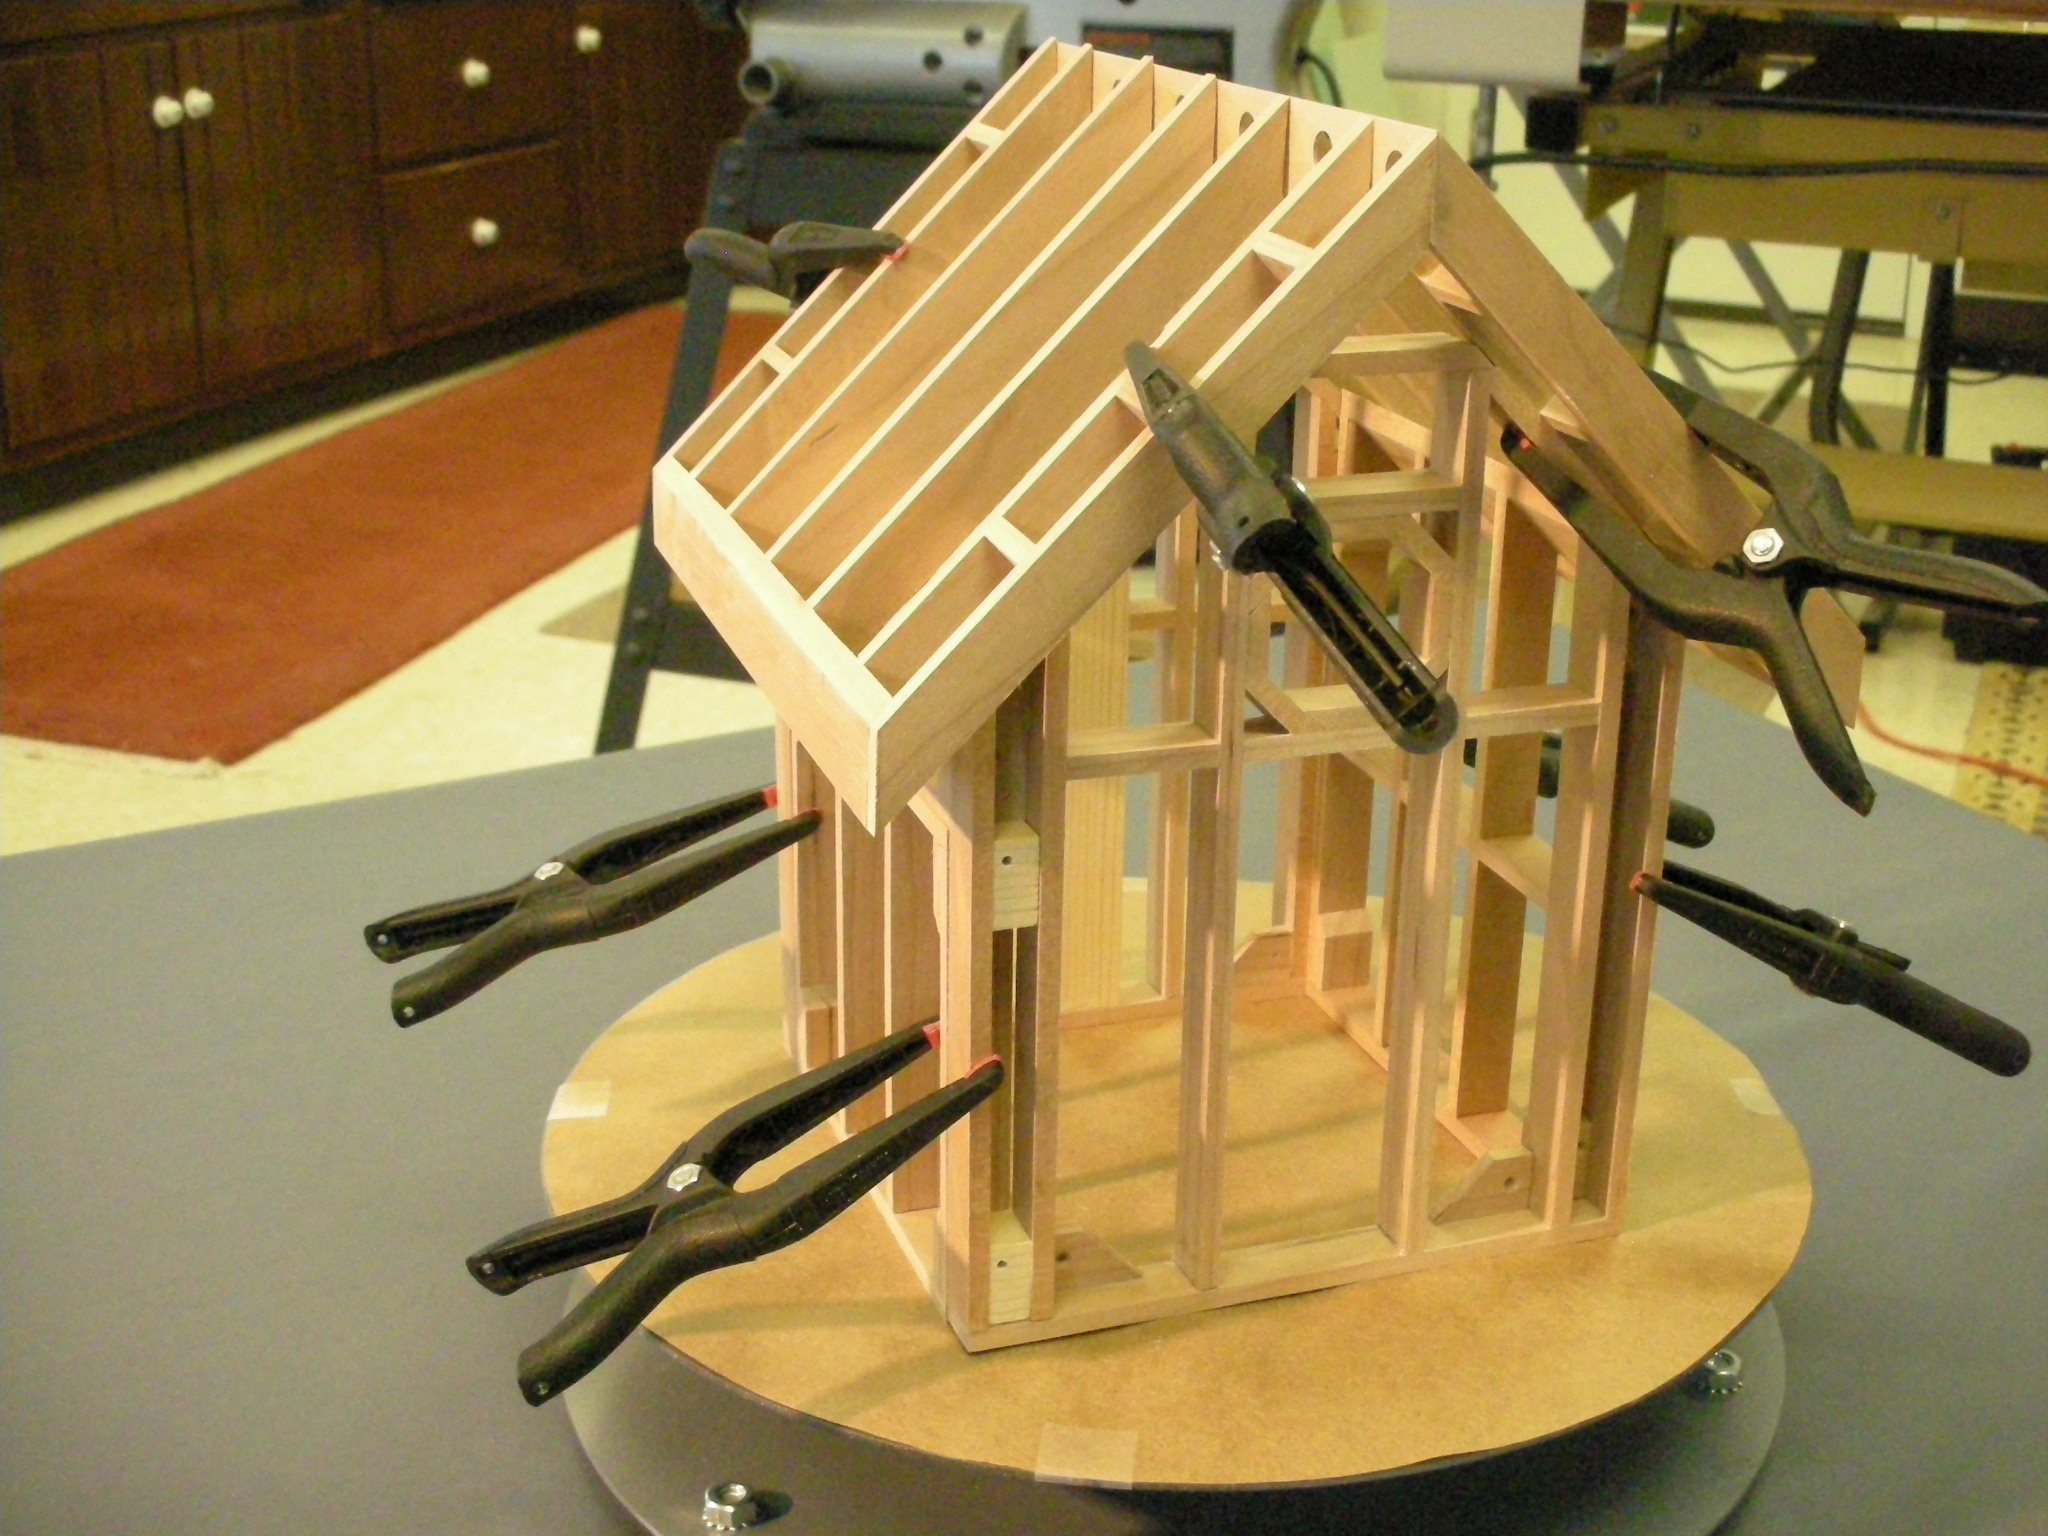 Best ideas about DIY Wood Work . Save or Pin Diy Woodworking Projects Teds Woodworking Plans Who Is Now.